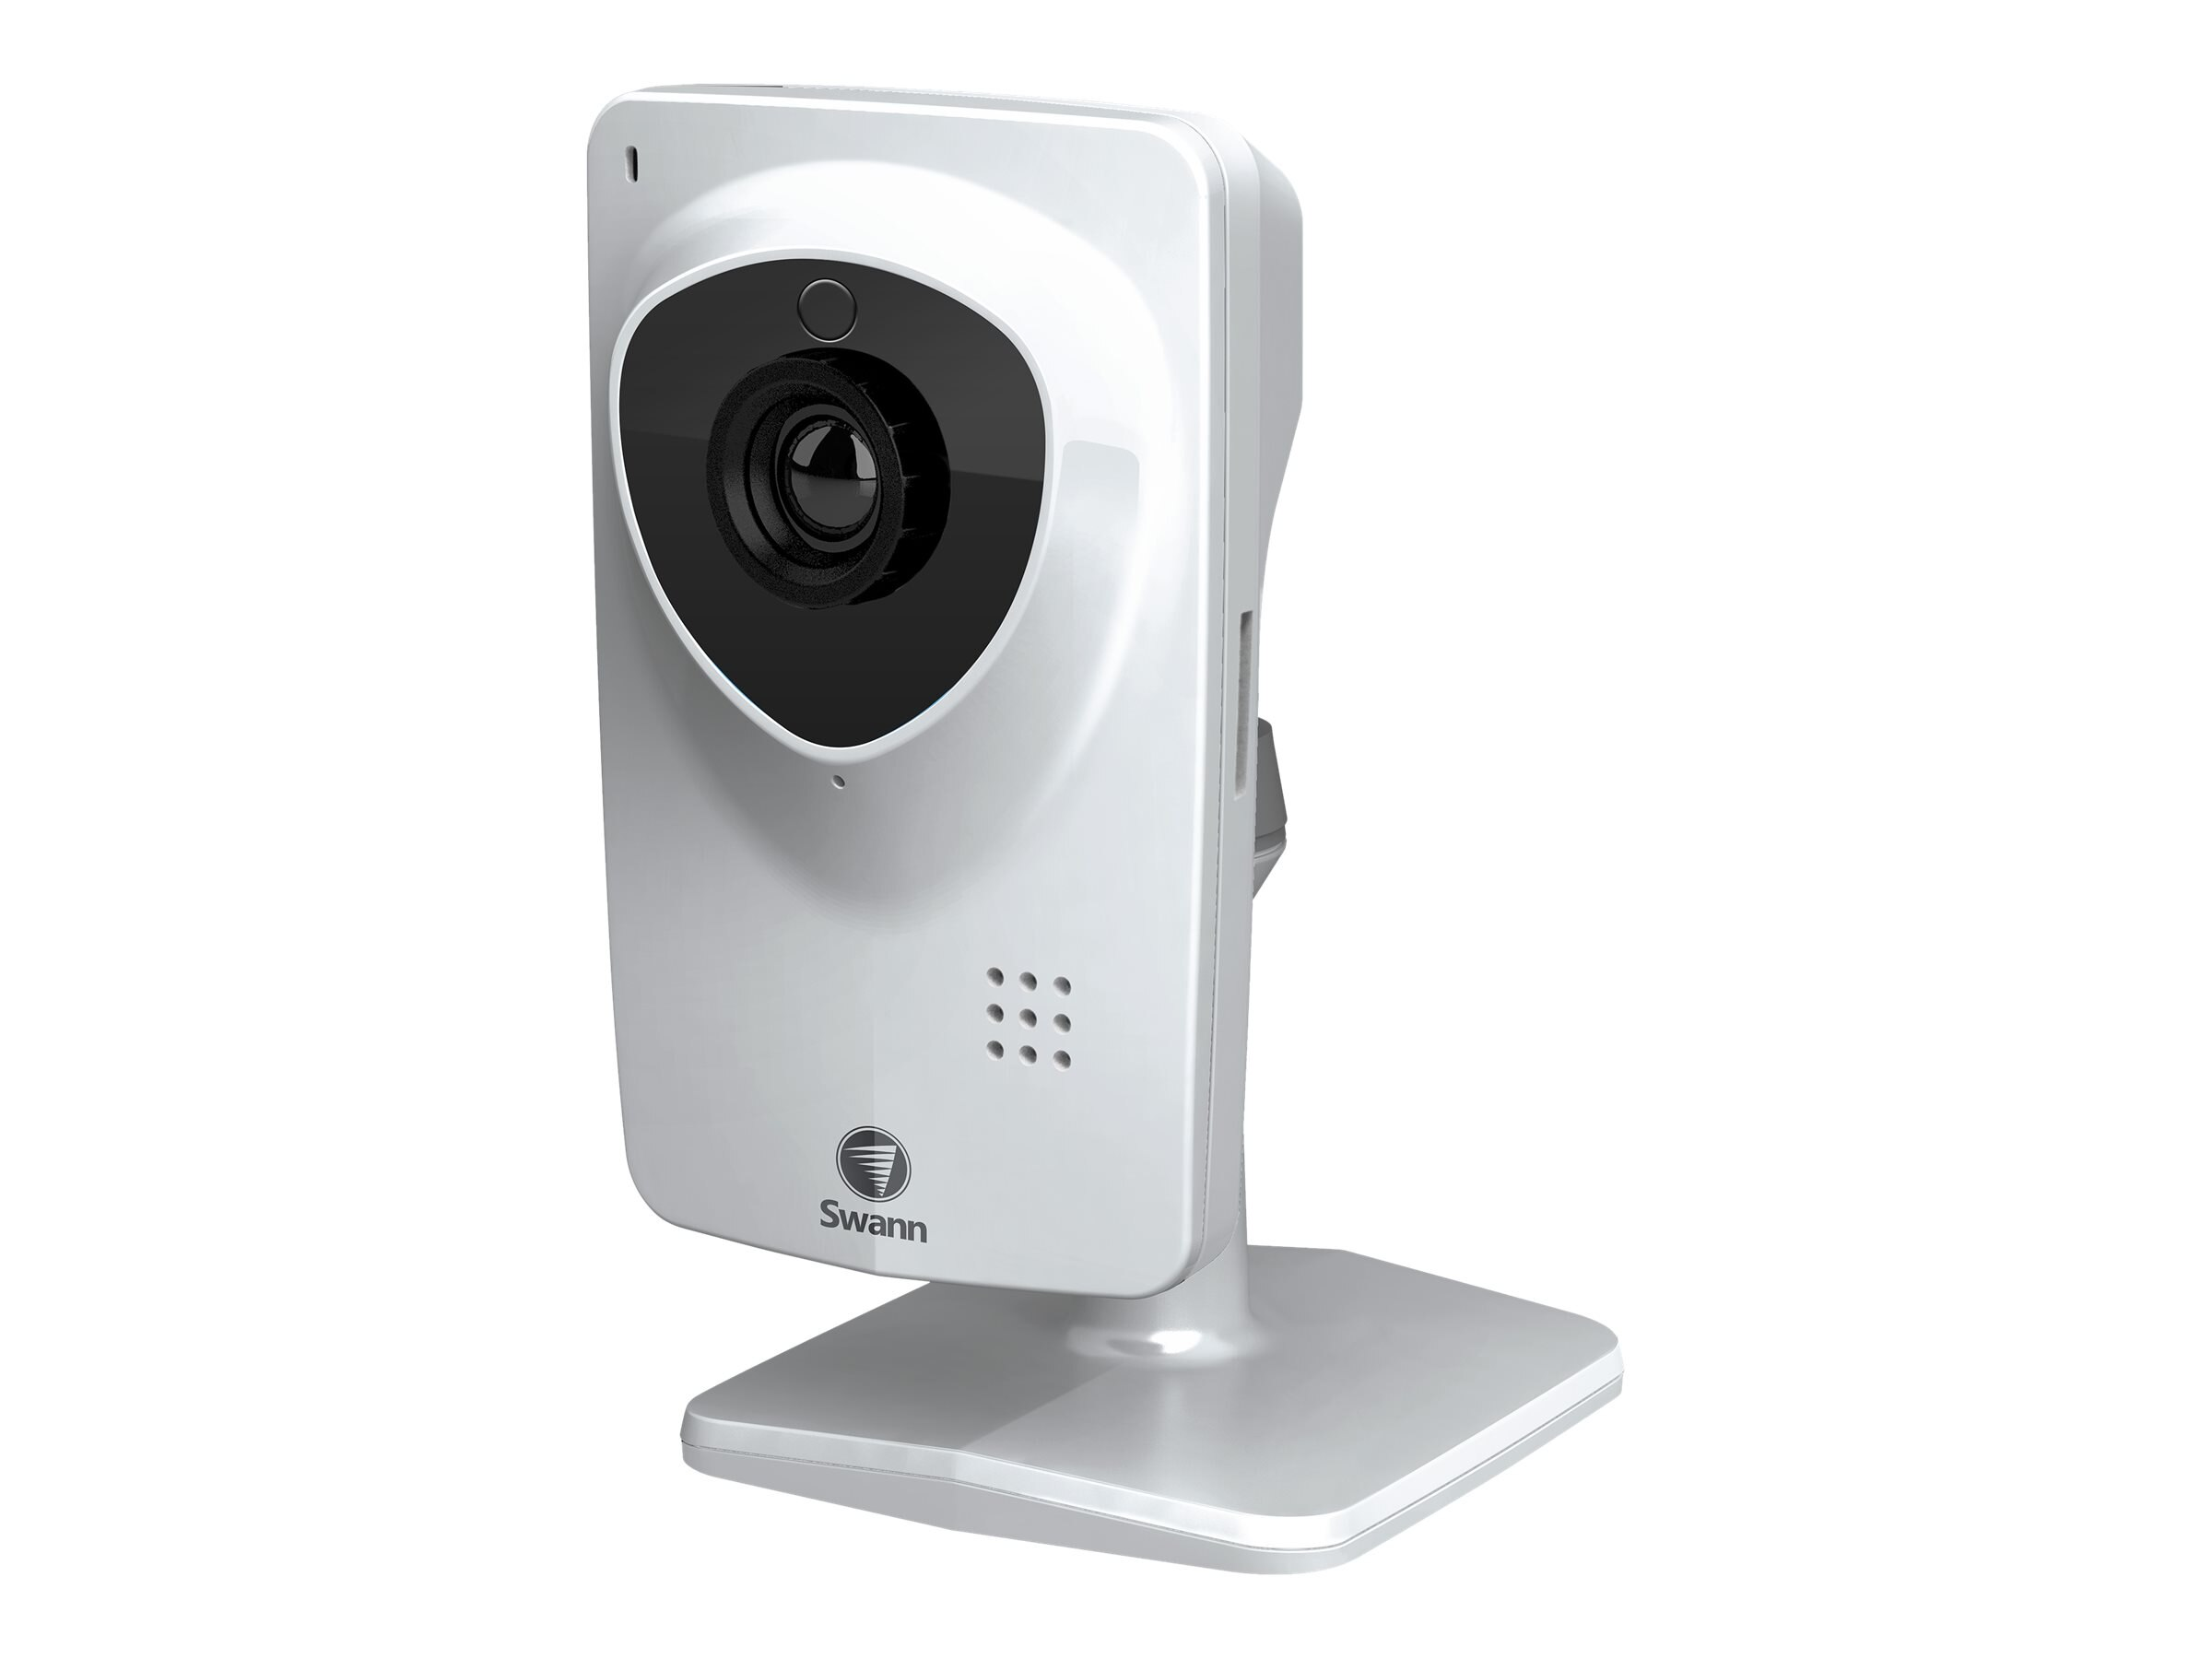 Swann 720p HD Plug & Play Wi-Fi Security Camera